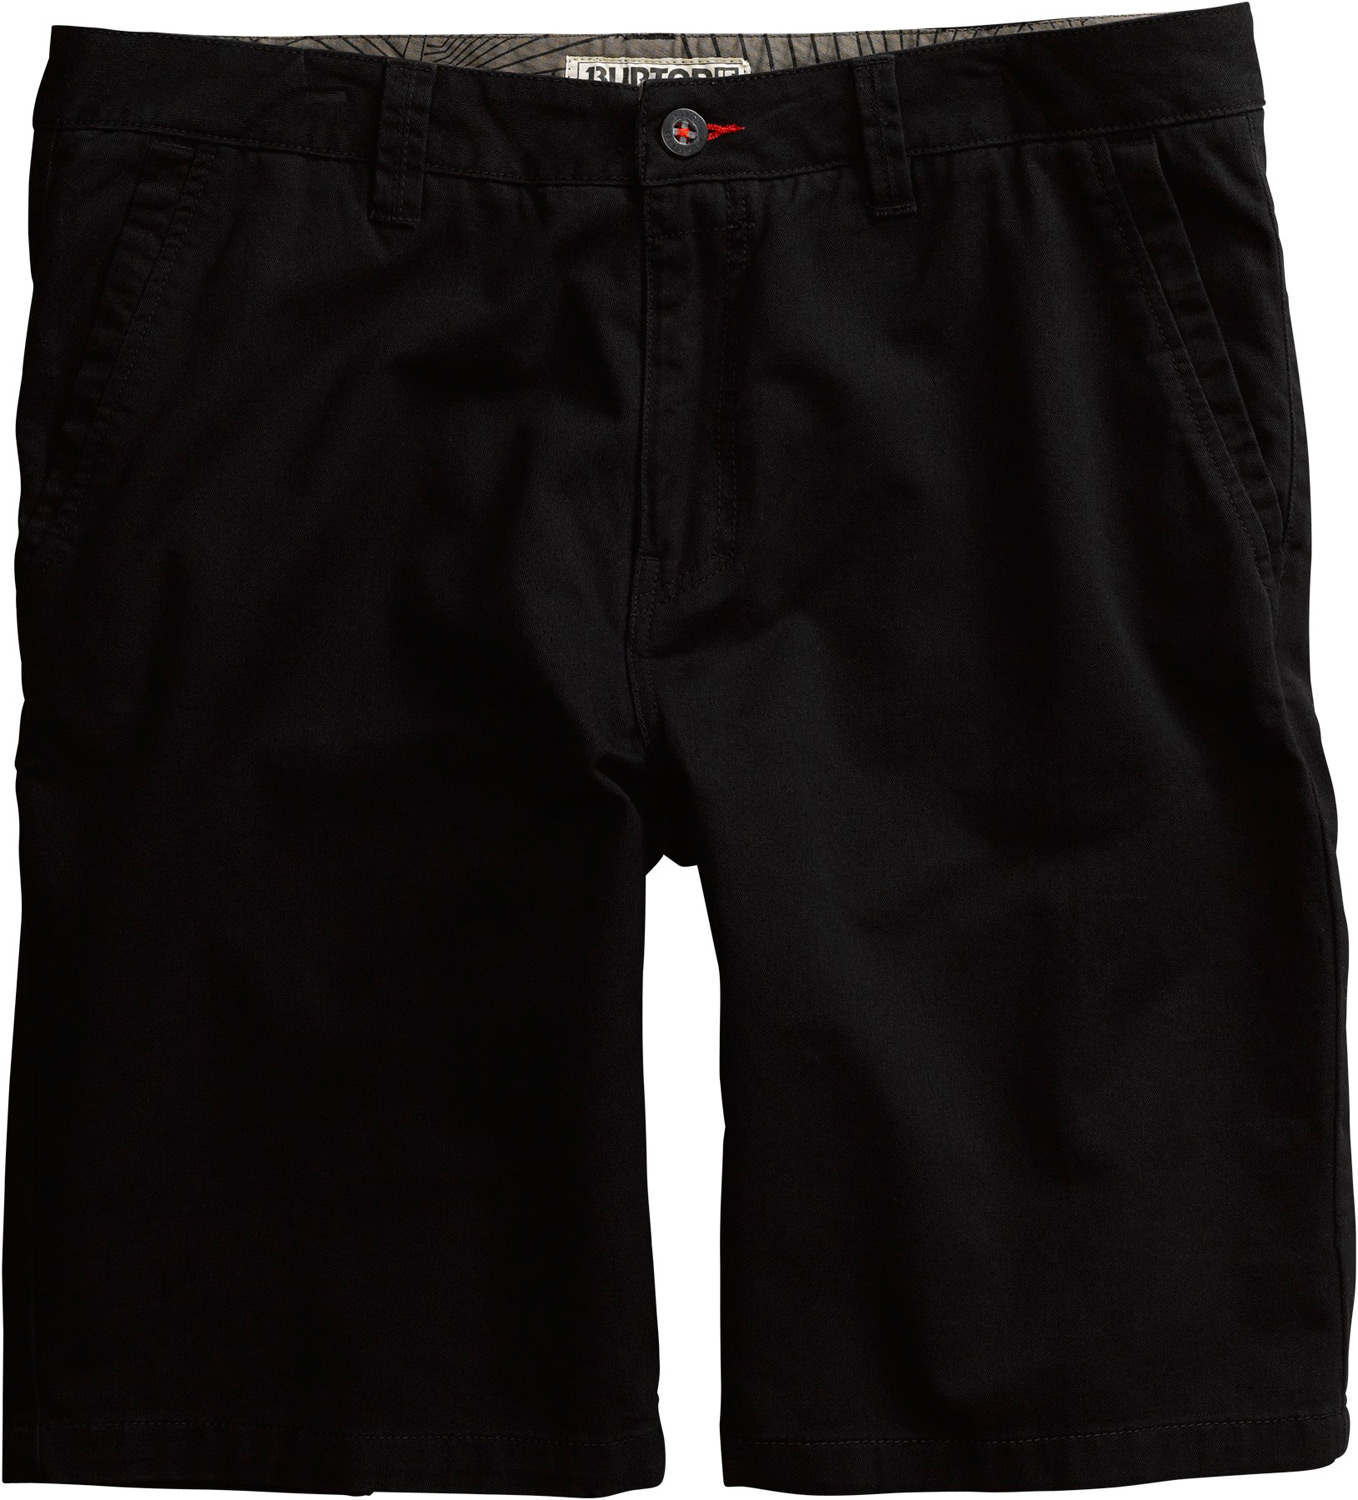 "Snowboard Key Features of the Burton Chill Shorts: 100% cotton Solid twill walkshort Garment wash Interior waistband detail 22"" outseam - $31.95"